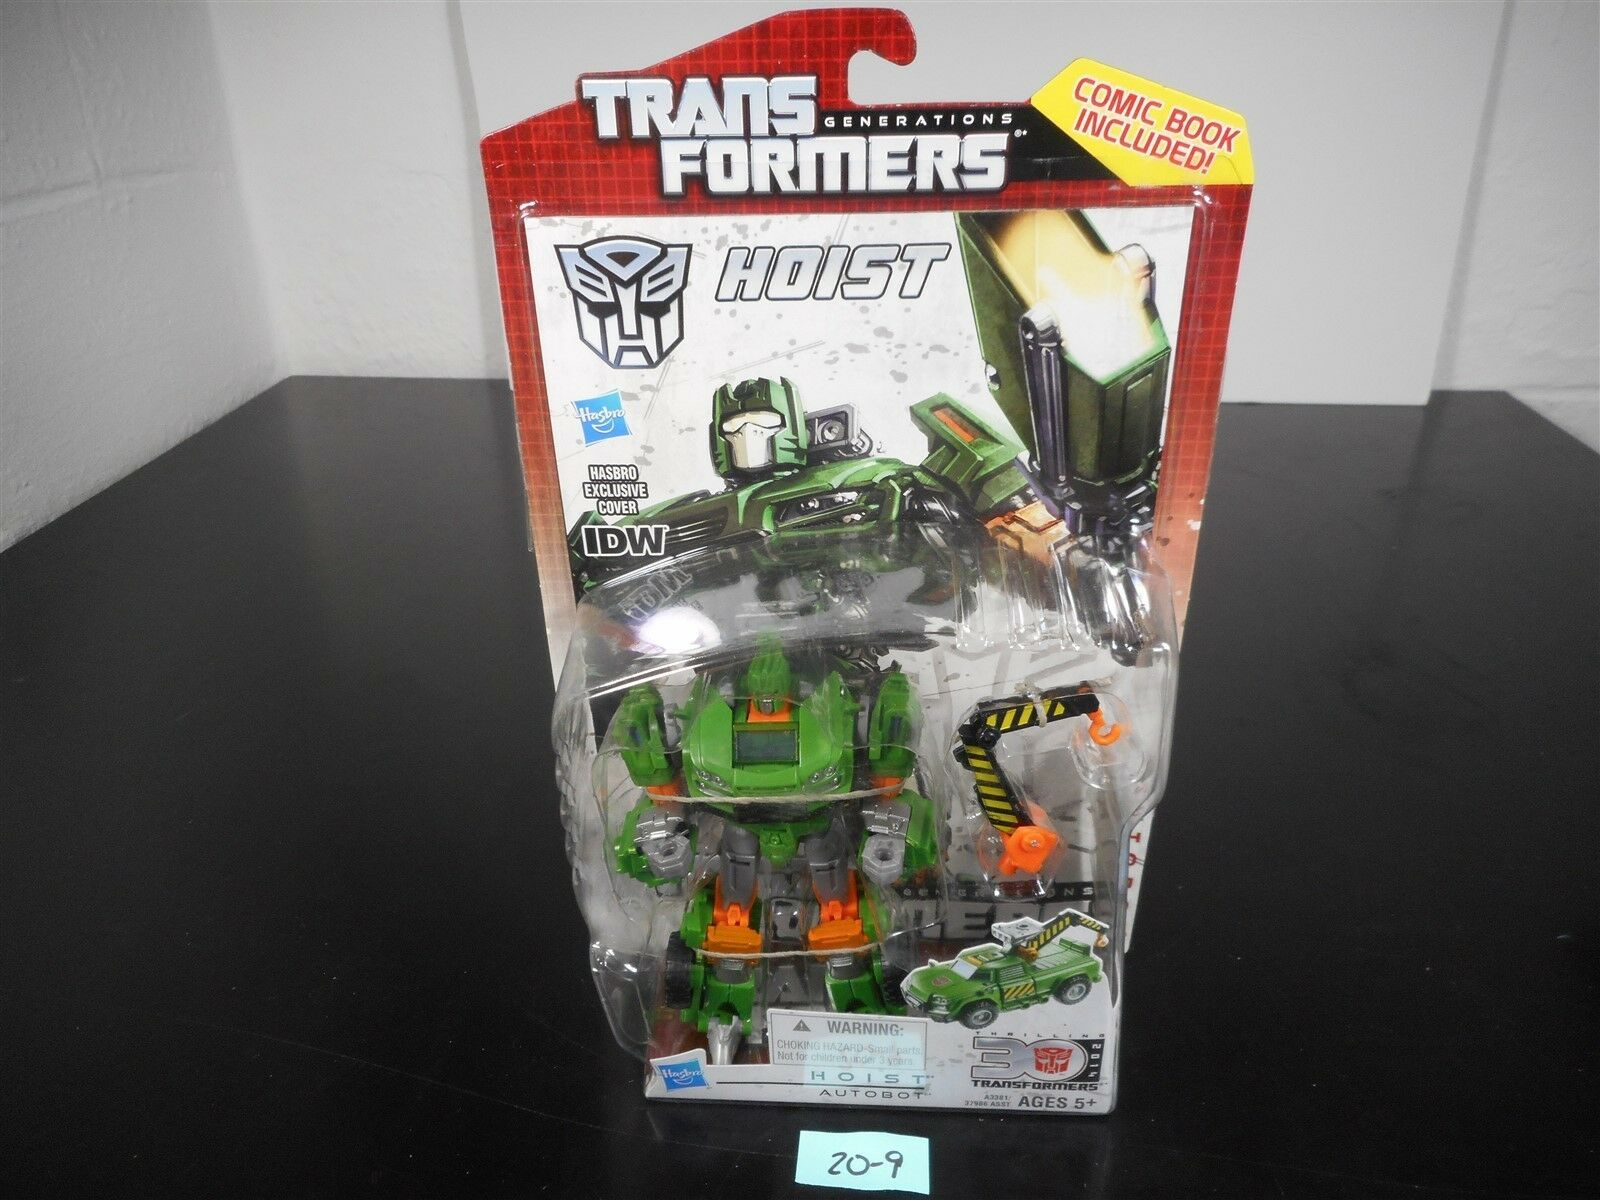 NEW & SEALED   TRANSFORMERS GENERATIONS IDW HOIST DELUXE FIGURE 30TH ANNIV 20-9